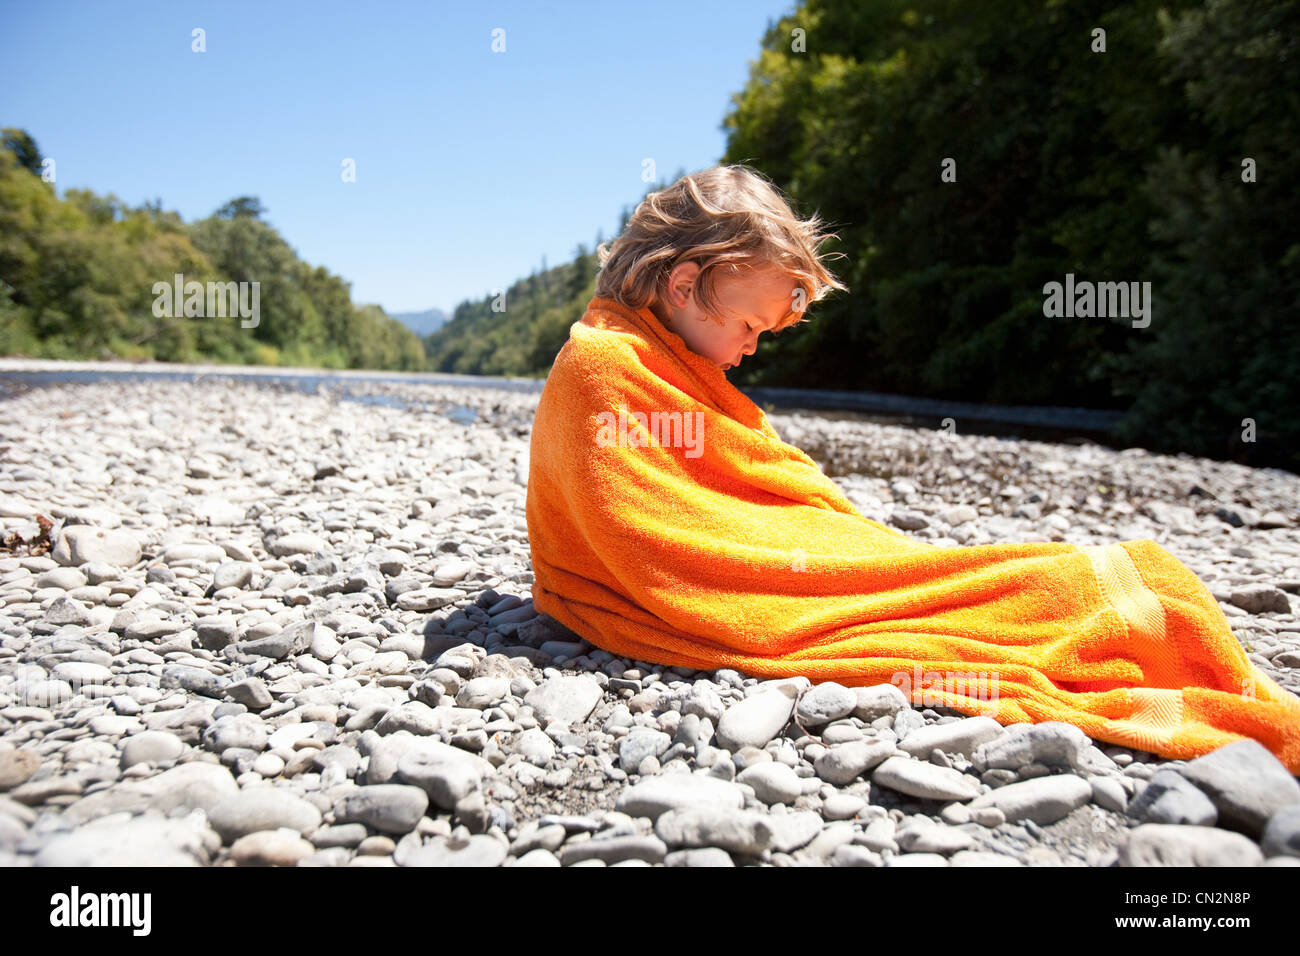 Boy wrapped in towel sitting on rocks - Stock Image